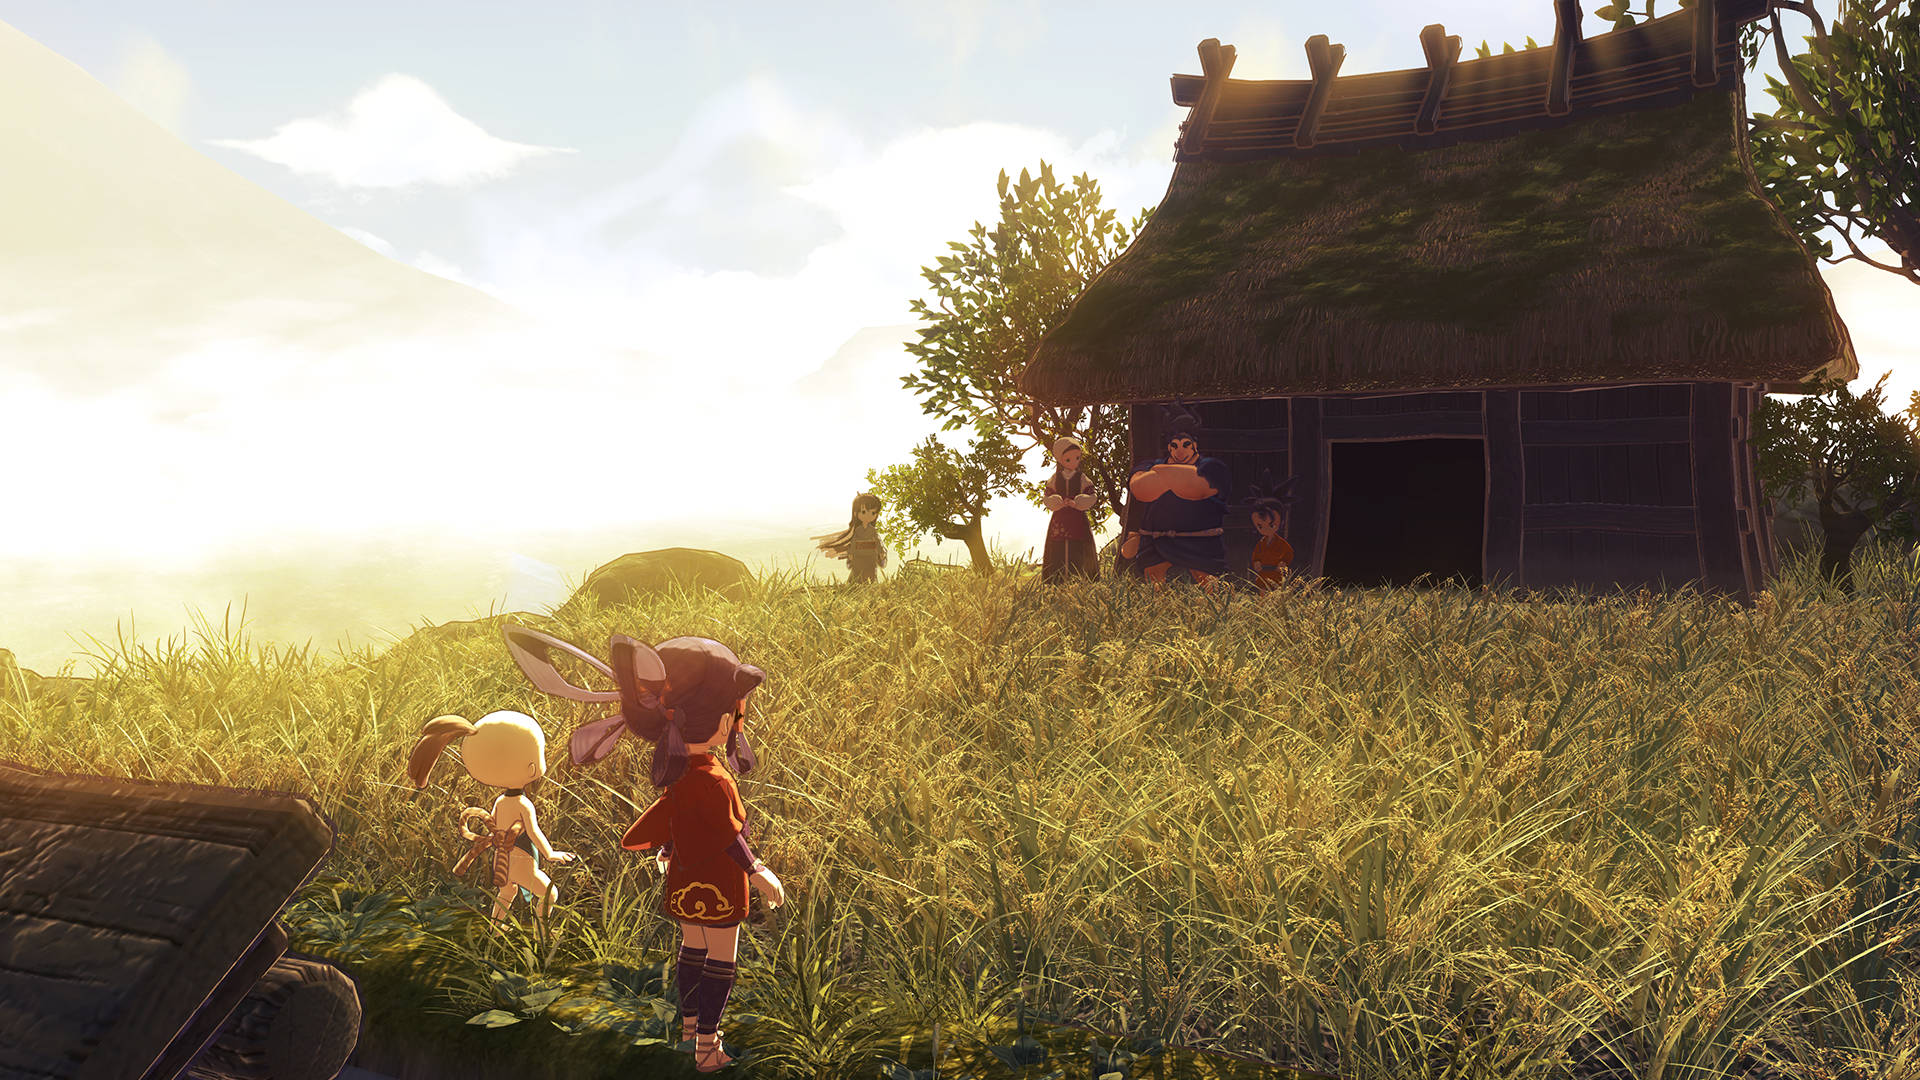 Screenshot from Sakuna: Of Rice and Ruin. A girl and a younger boy approach a small hut in a field where four other people await them.